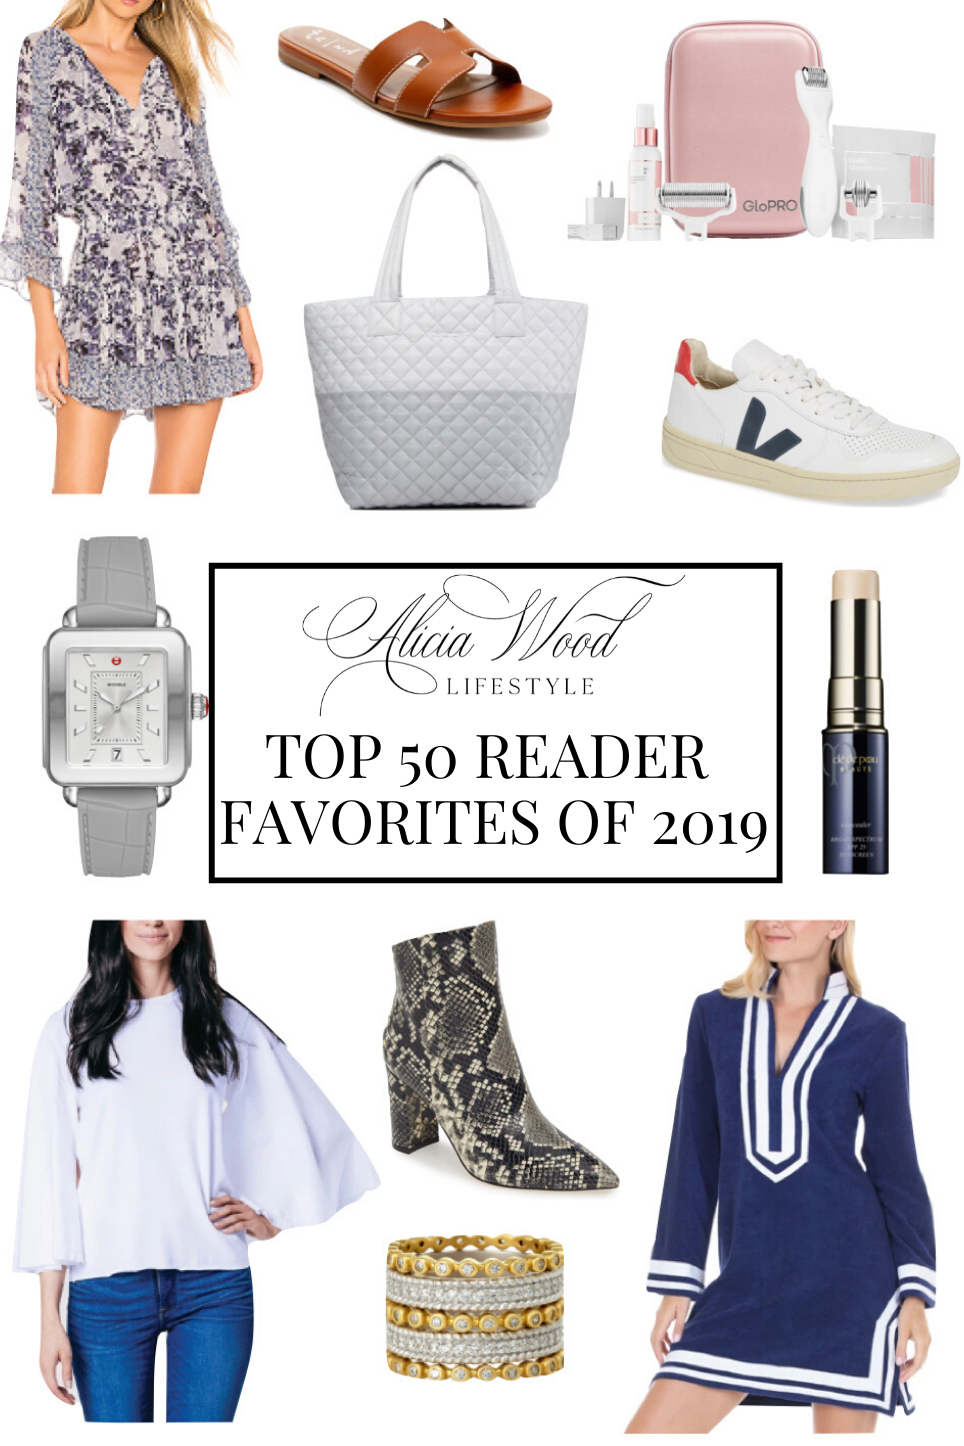 Top 50 Reader Favorites for 2019